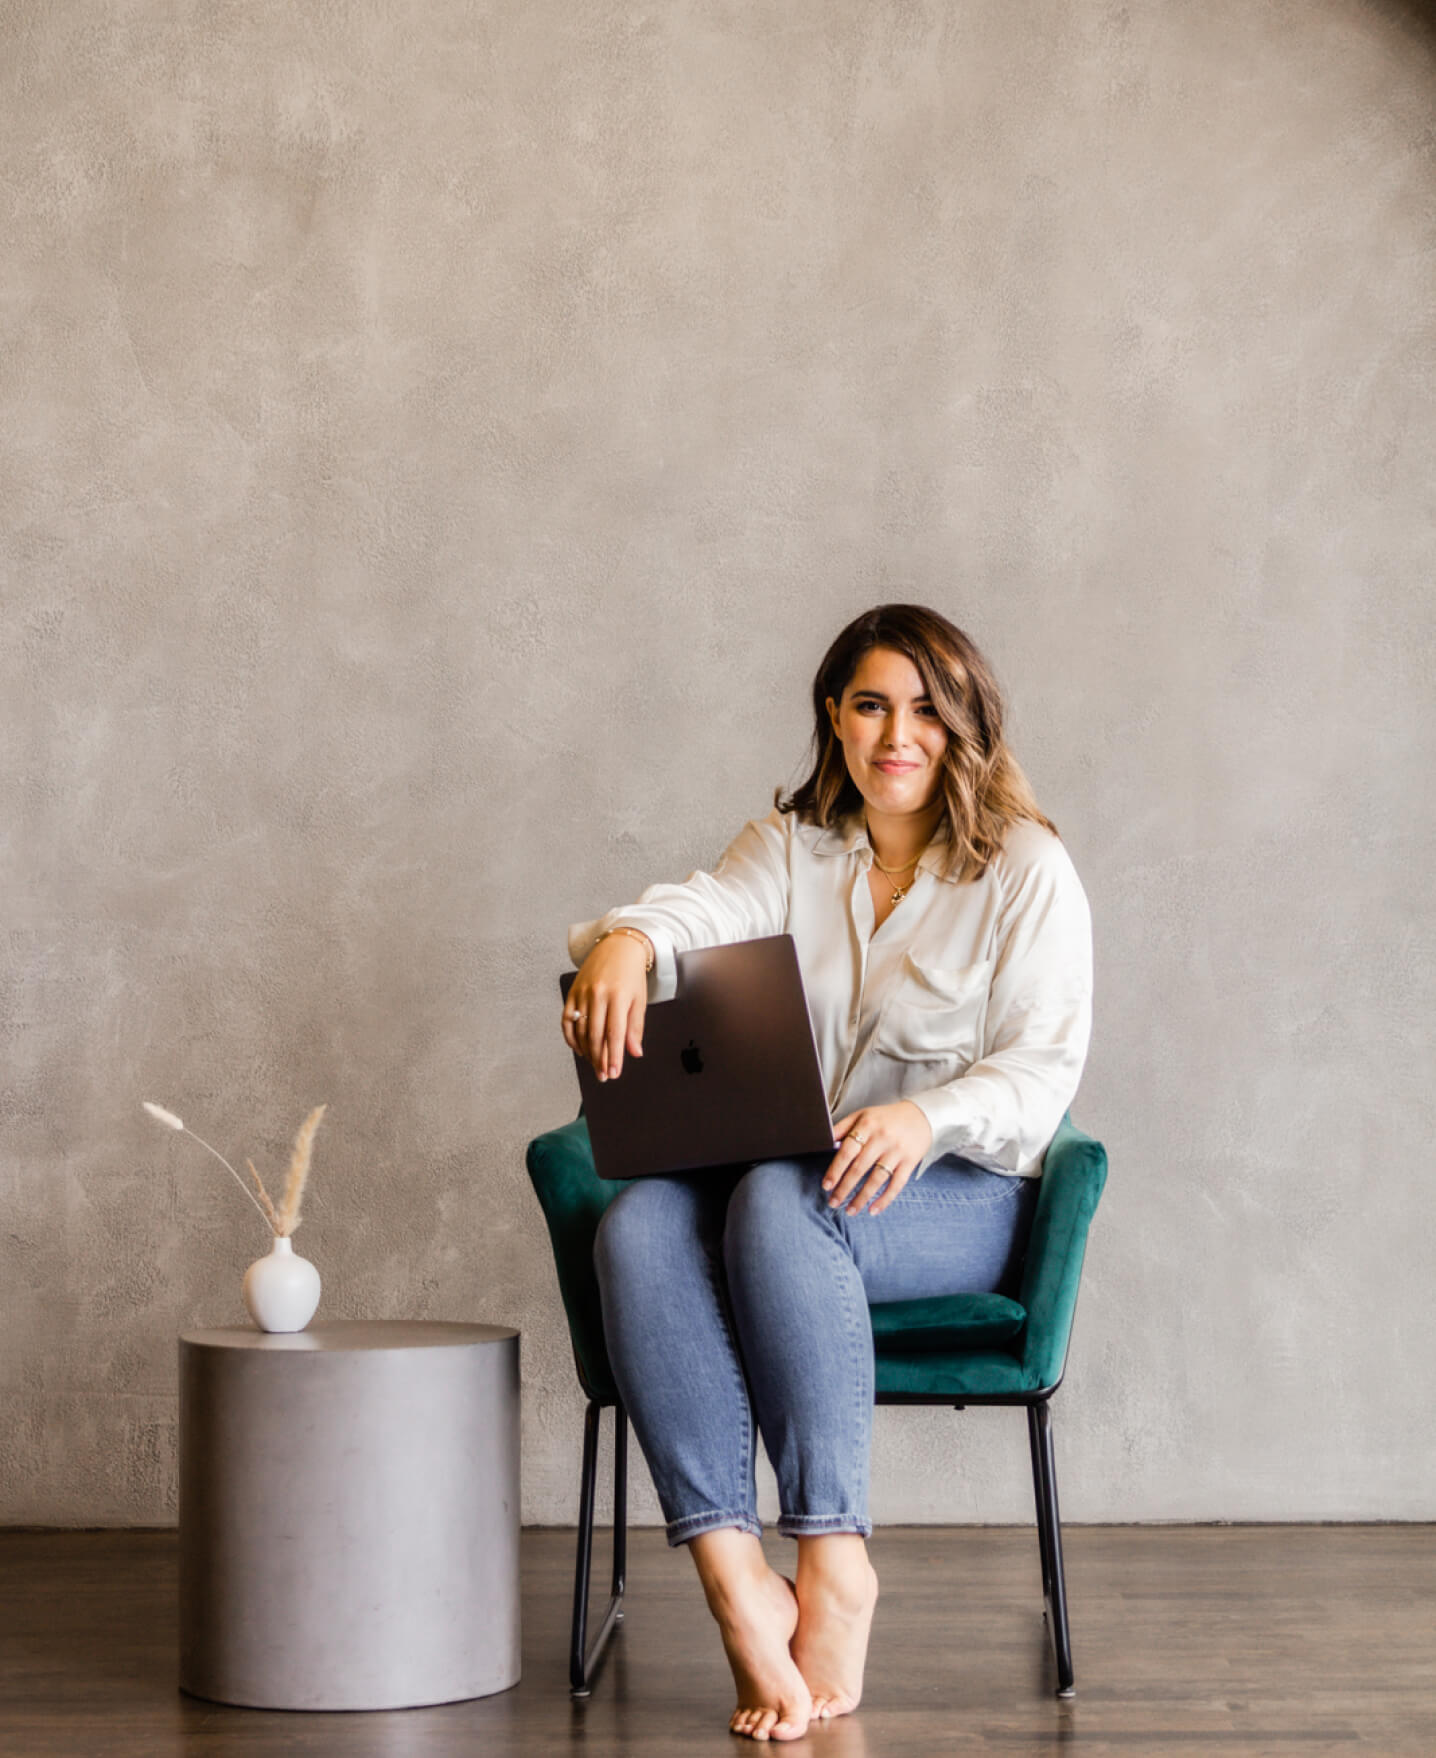 Lea, the Shopify designer and developer founder of Arq sitting on a green chair holding her laptop smiles at the camera